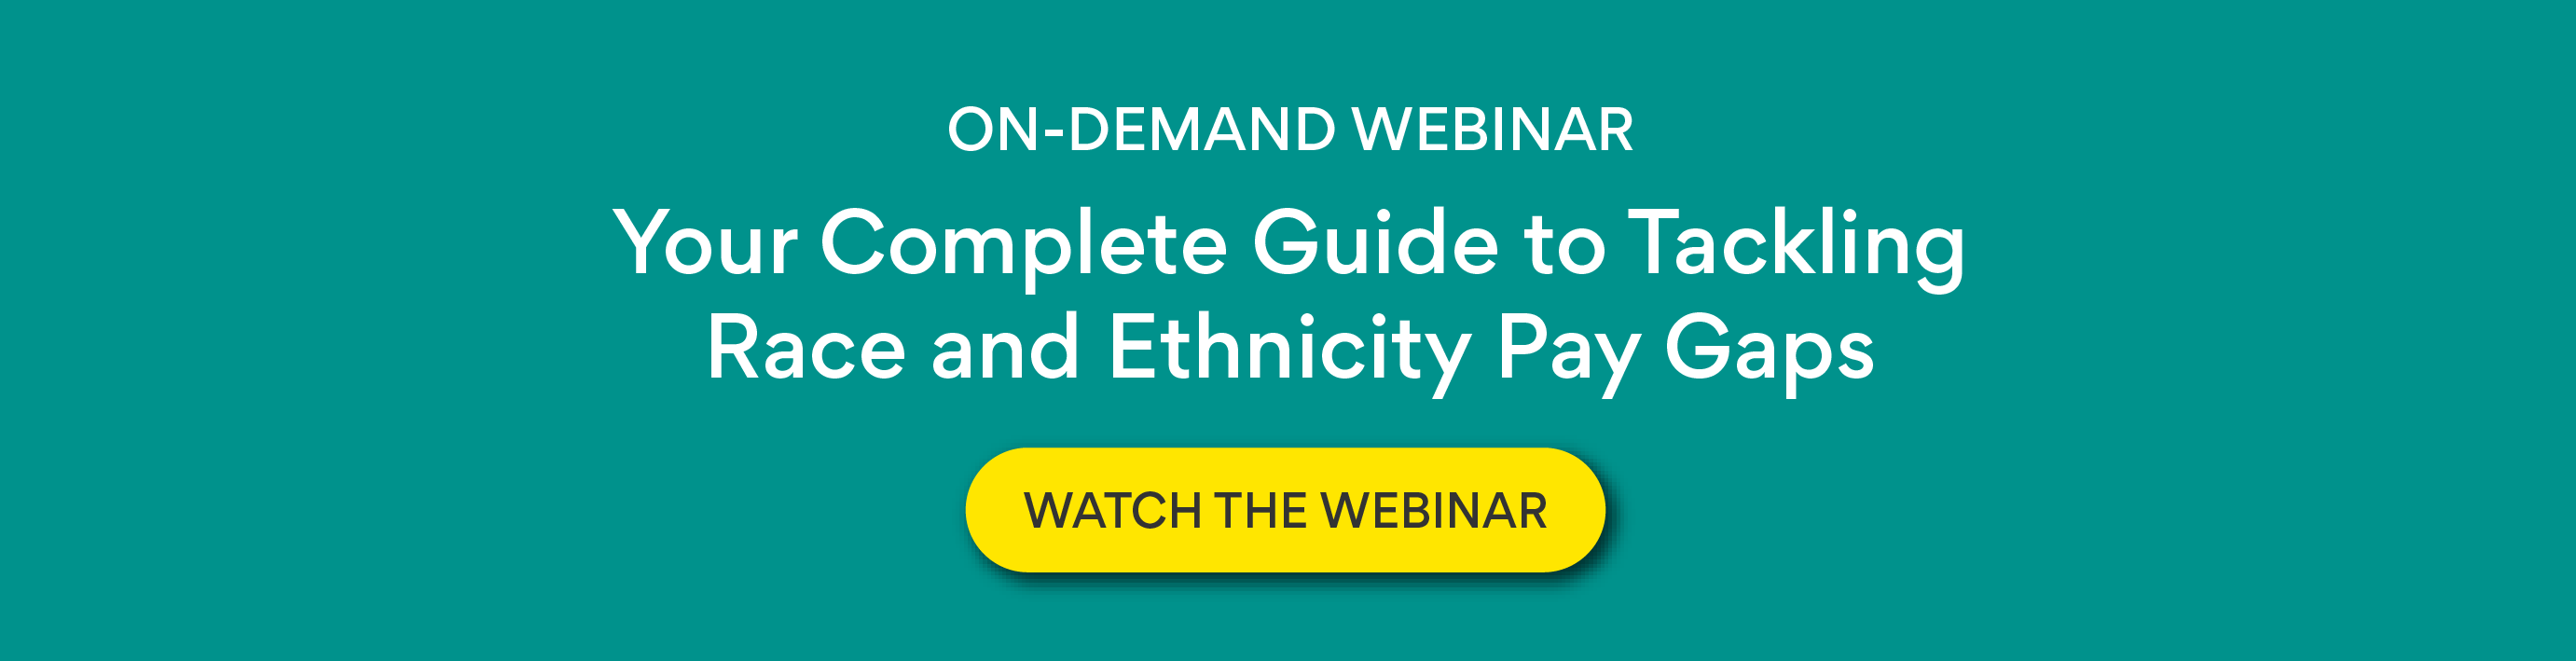 On-Demand Webinar: Your Complete Guide to Tackling Race and Ethnicity Pay Gaps